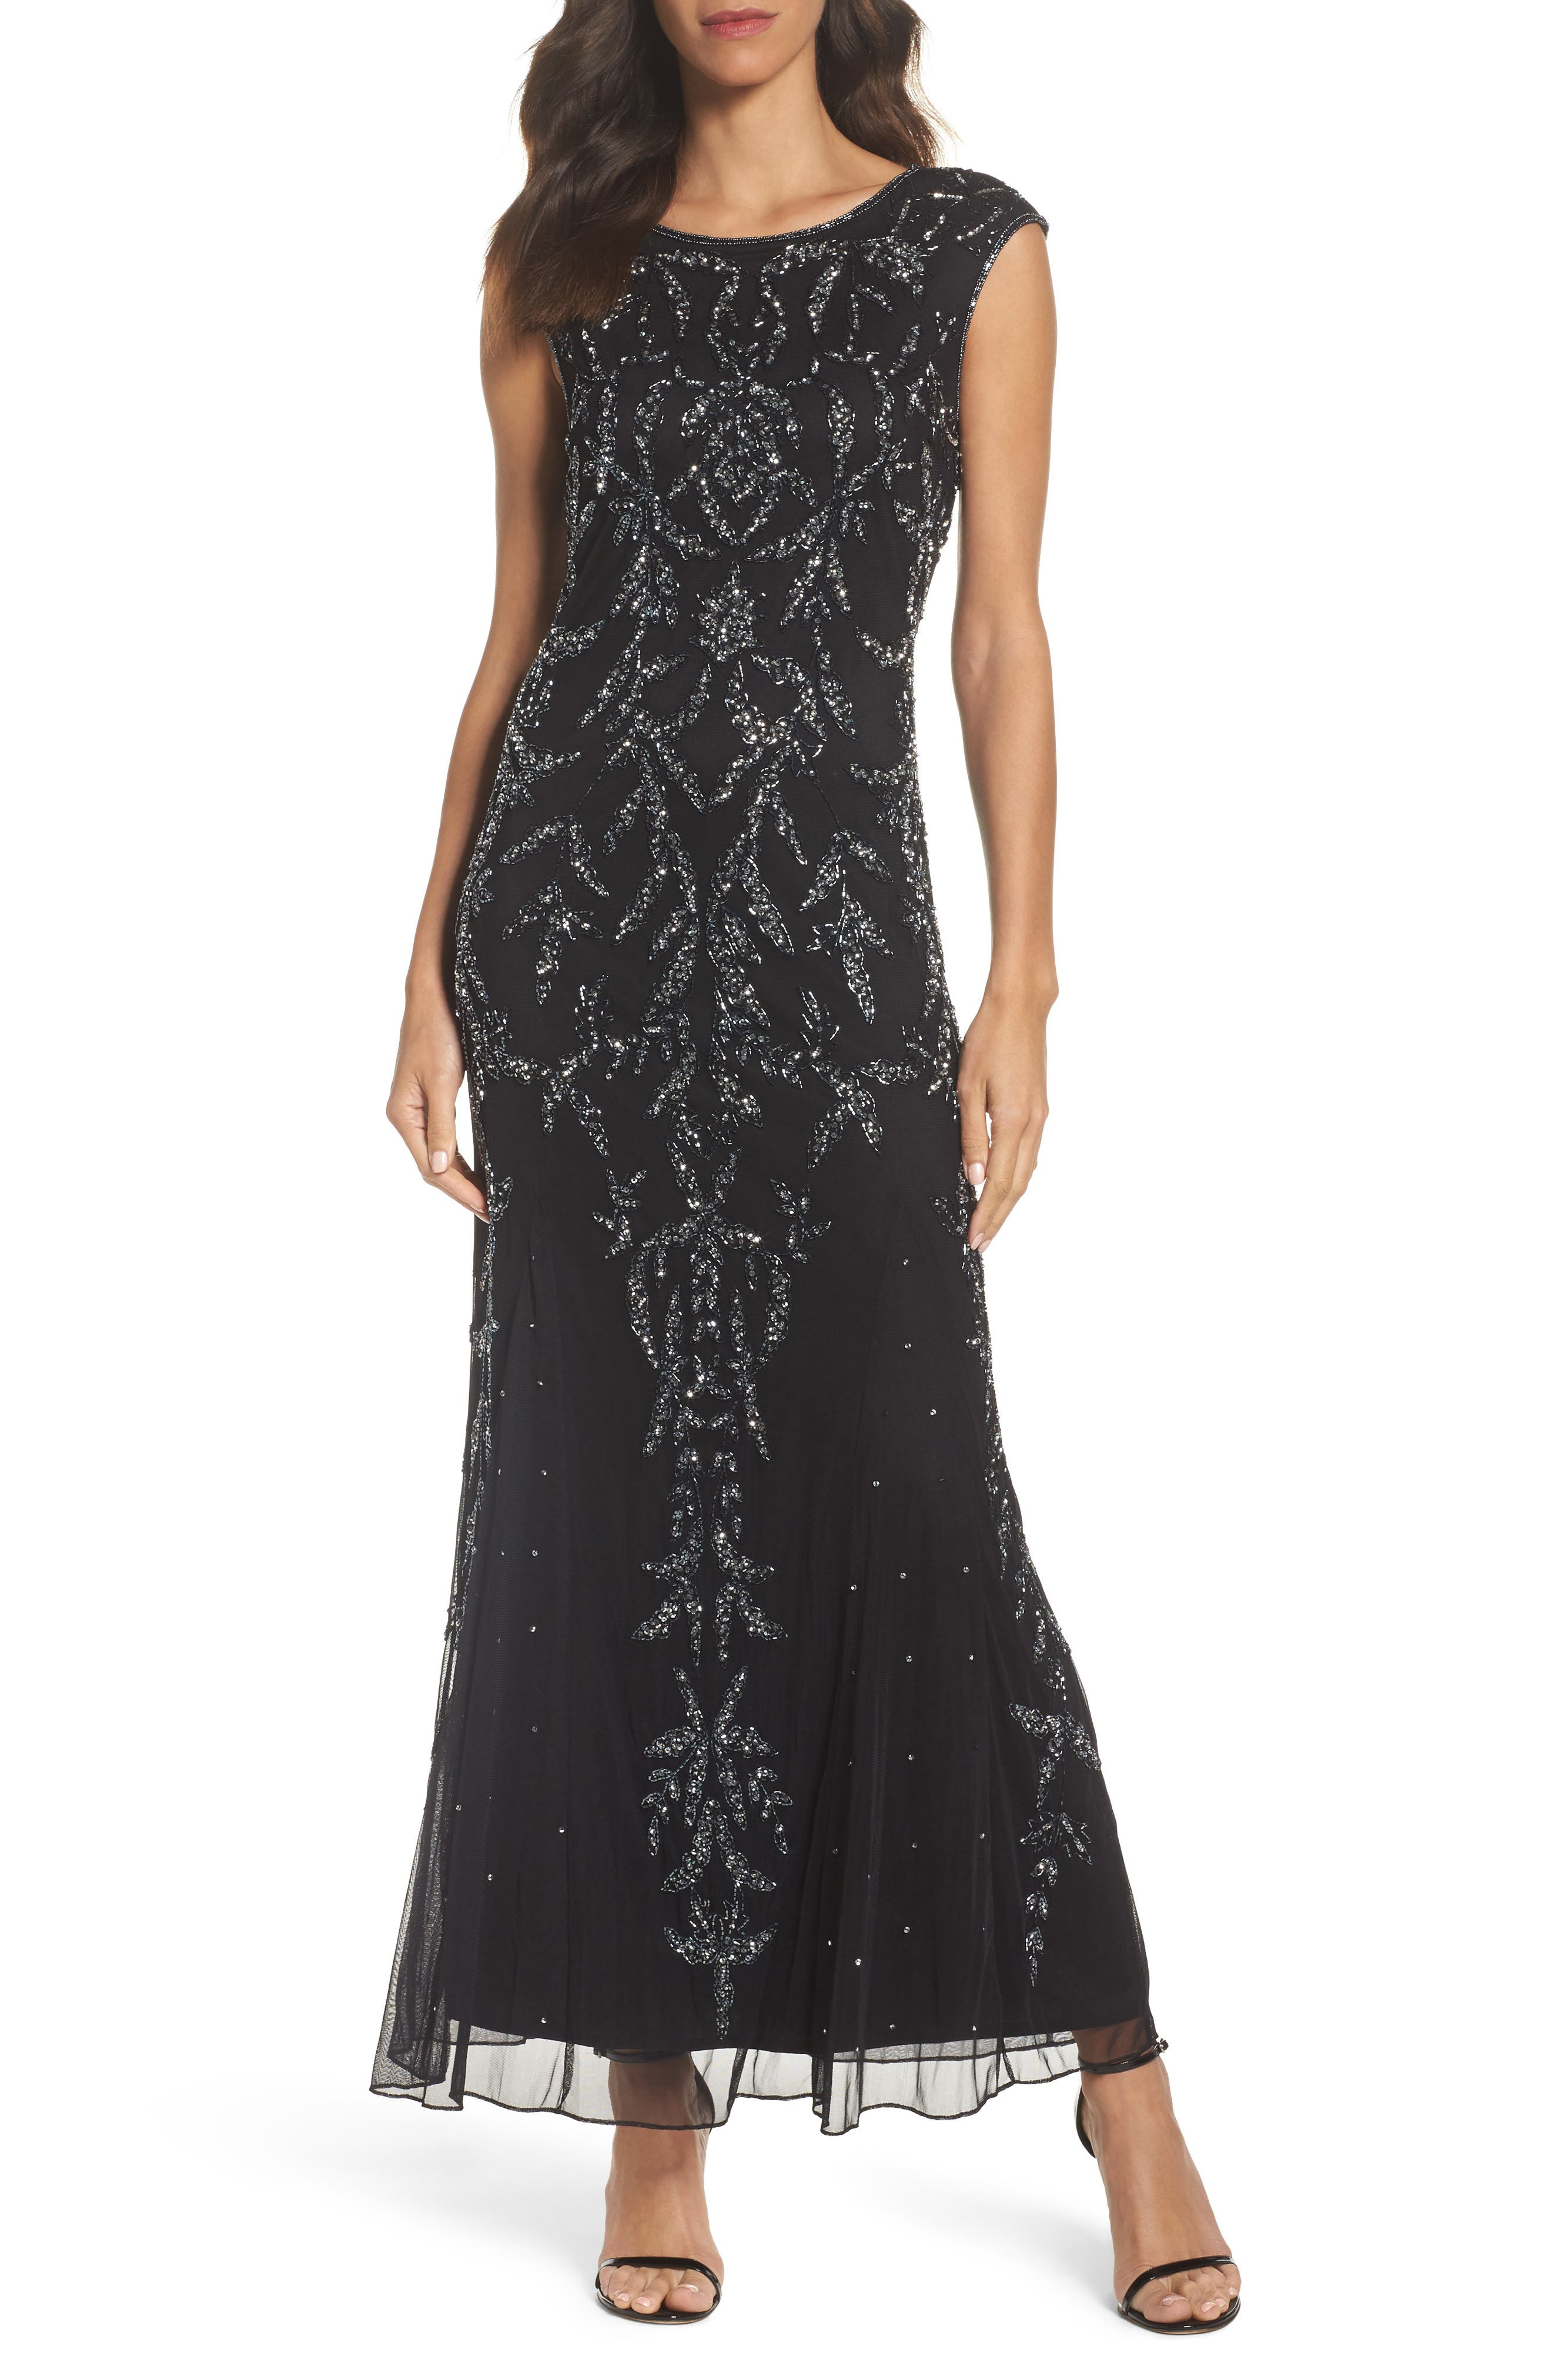 Pisarro Nights Floral Motif Embellished Gown